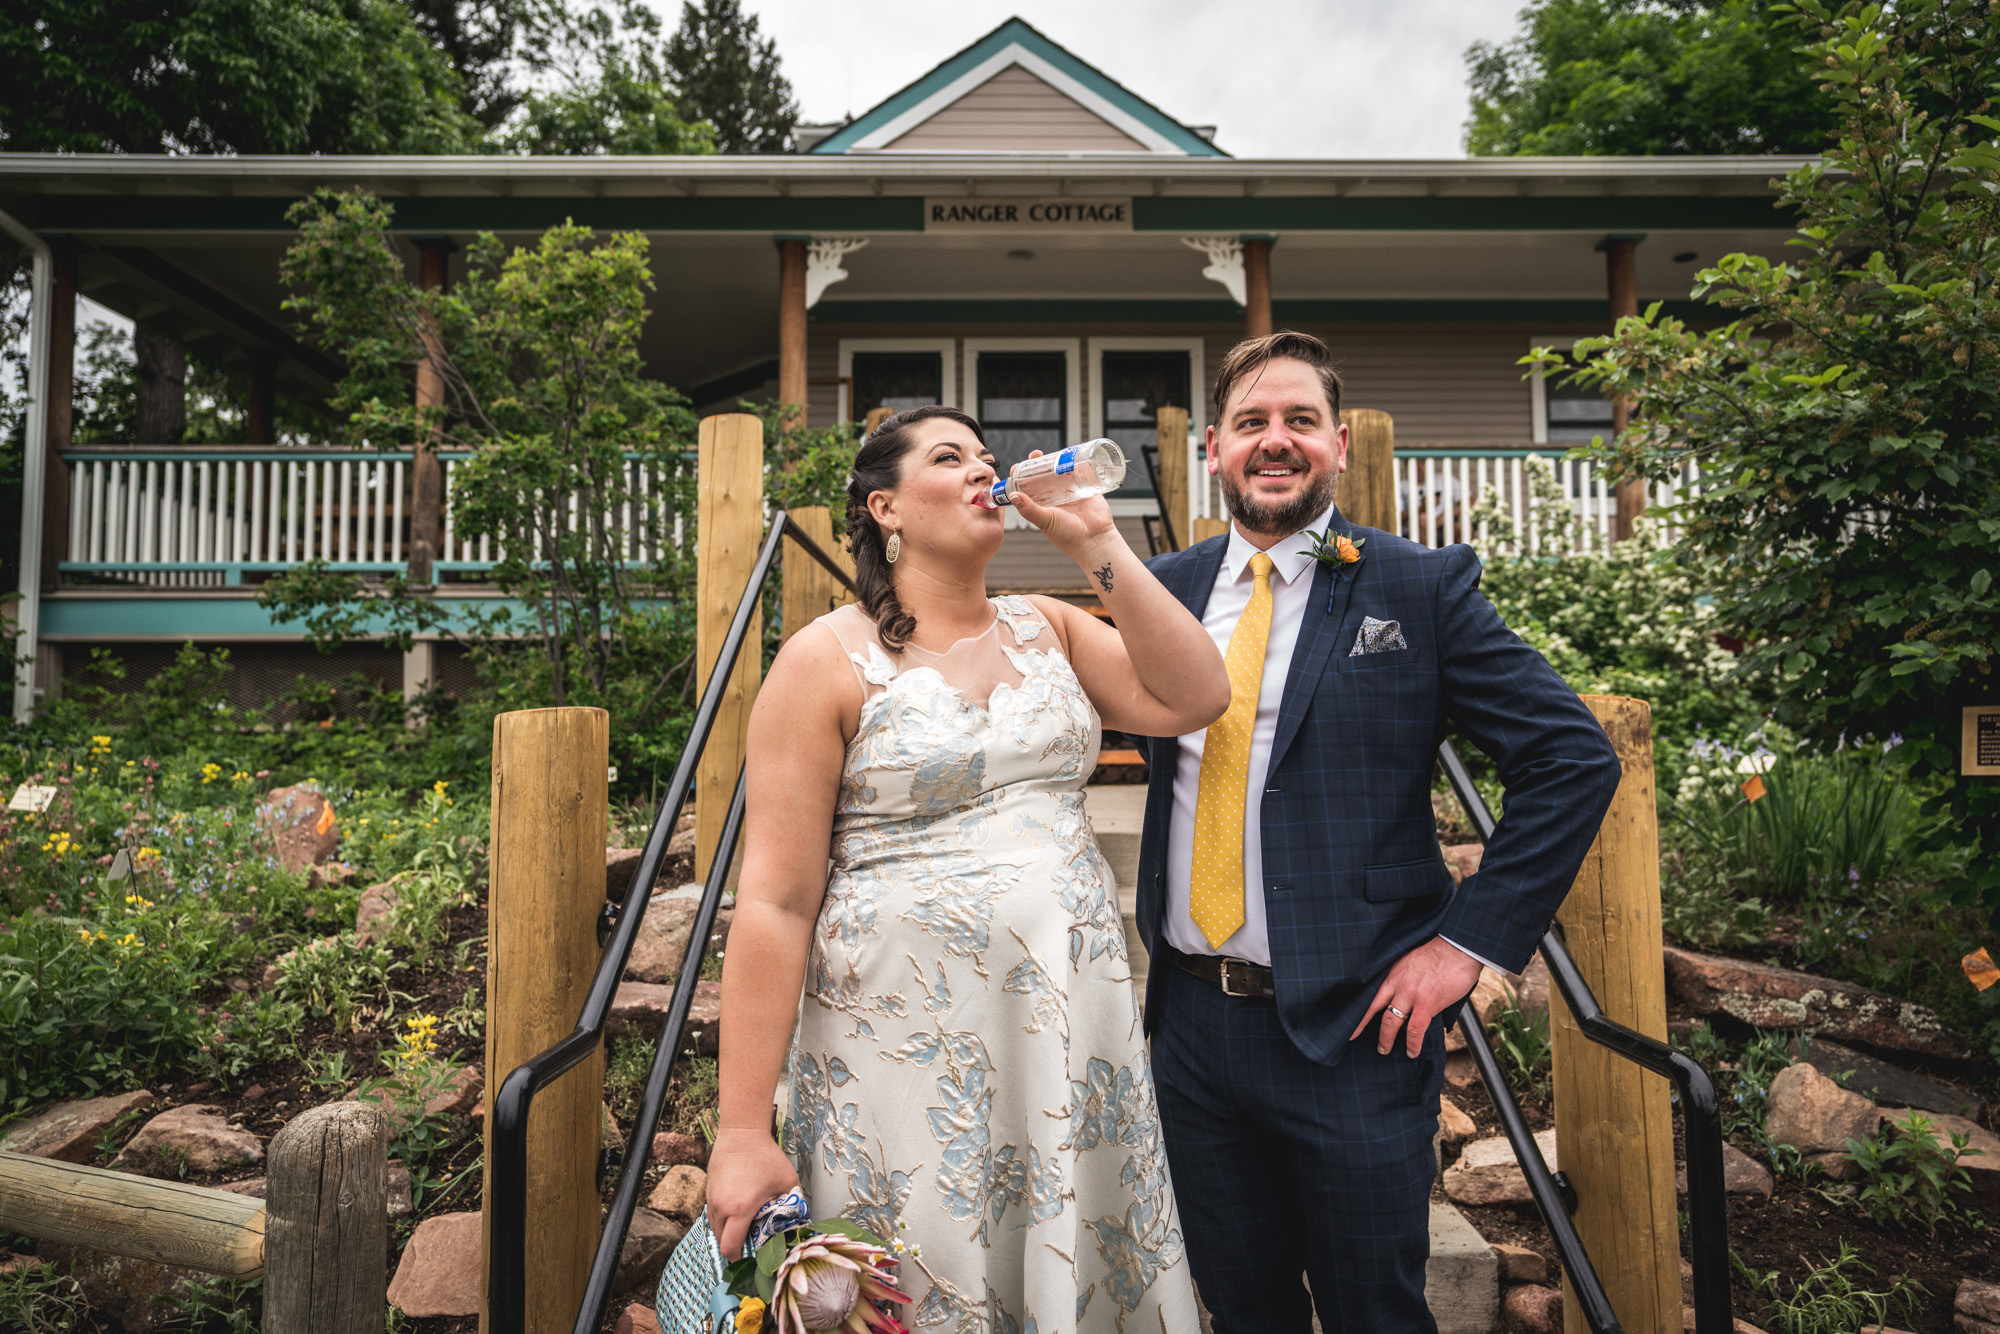 Color image of a bride tilting up her Zima and drinking it while holding her bouquet as her husband smiles and waits for her to finish it. Taken at the visitor's center in Chautauqua Park.